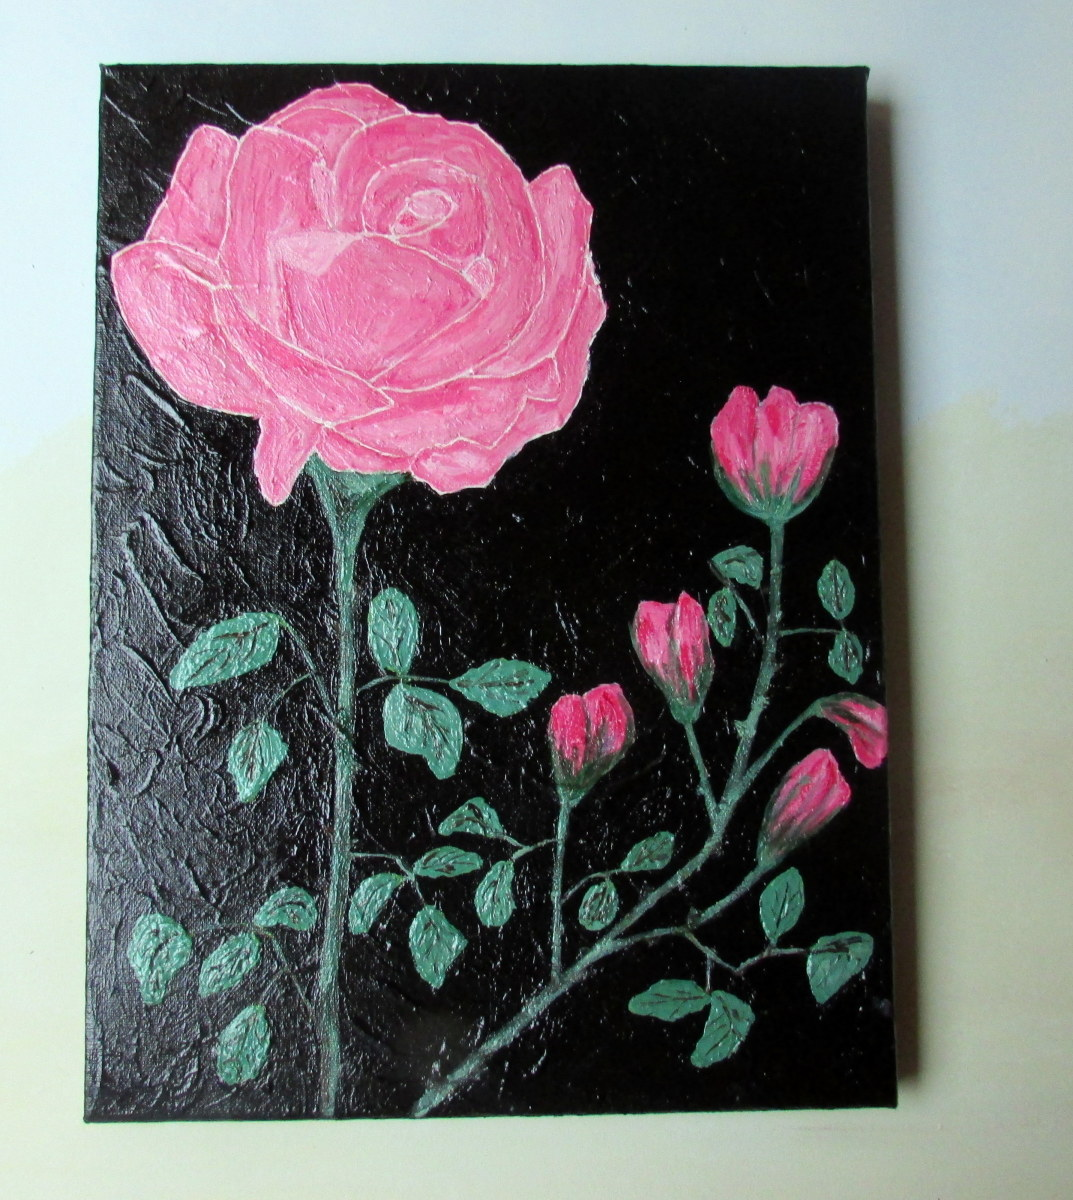 My painting of Pink Roses in acrylic